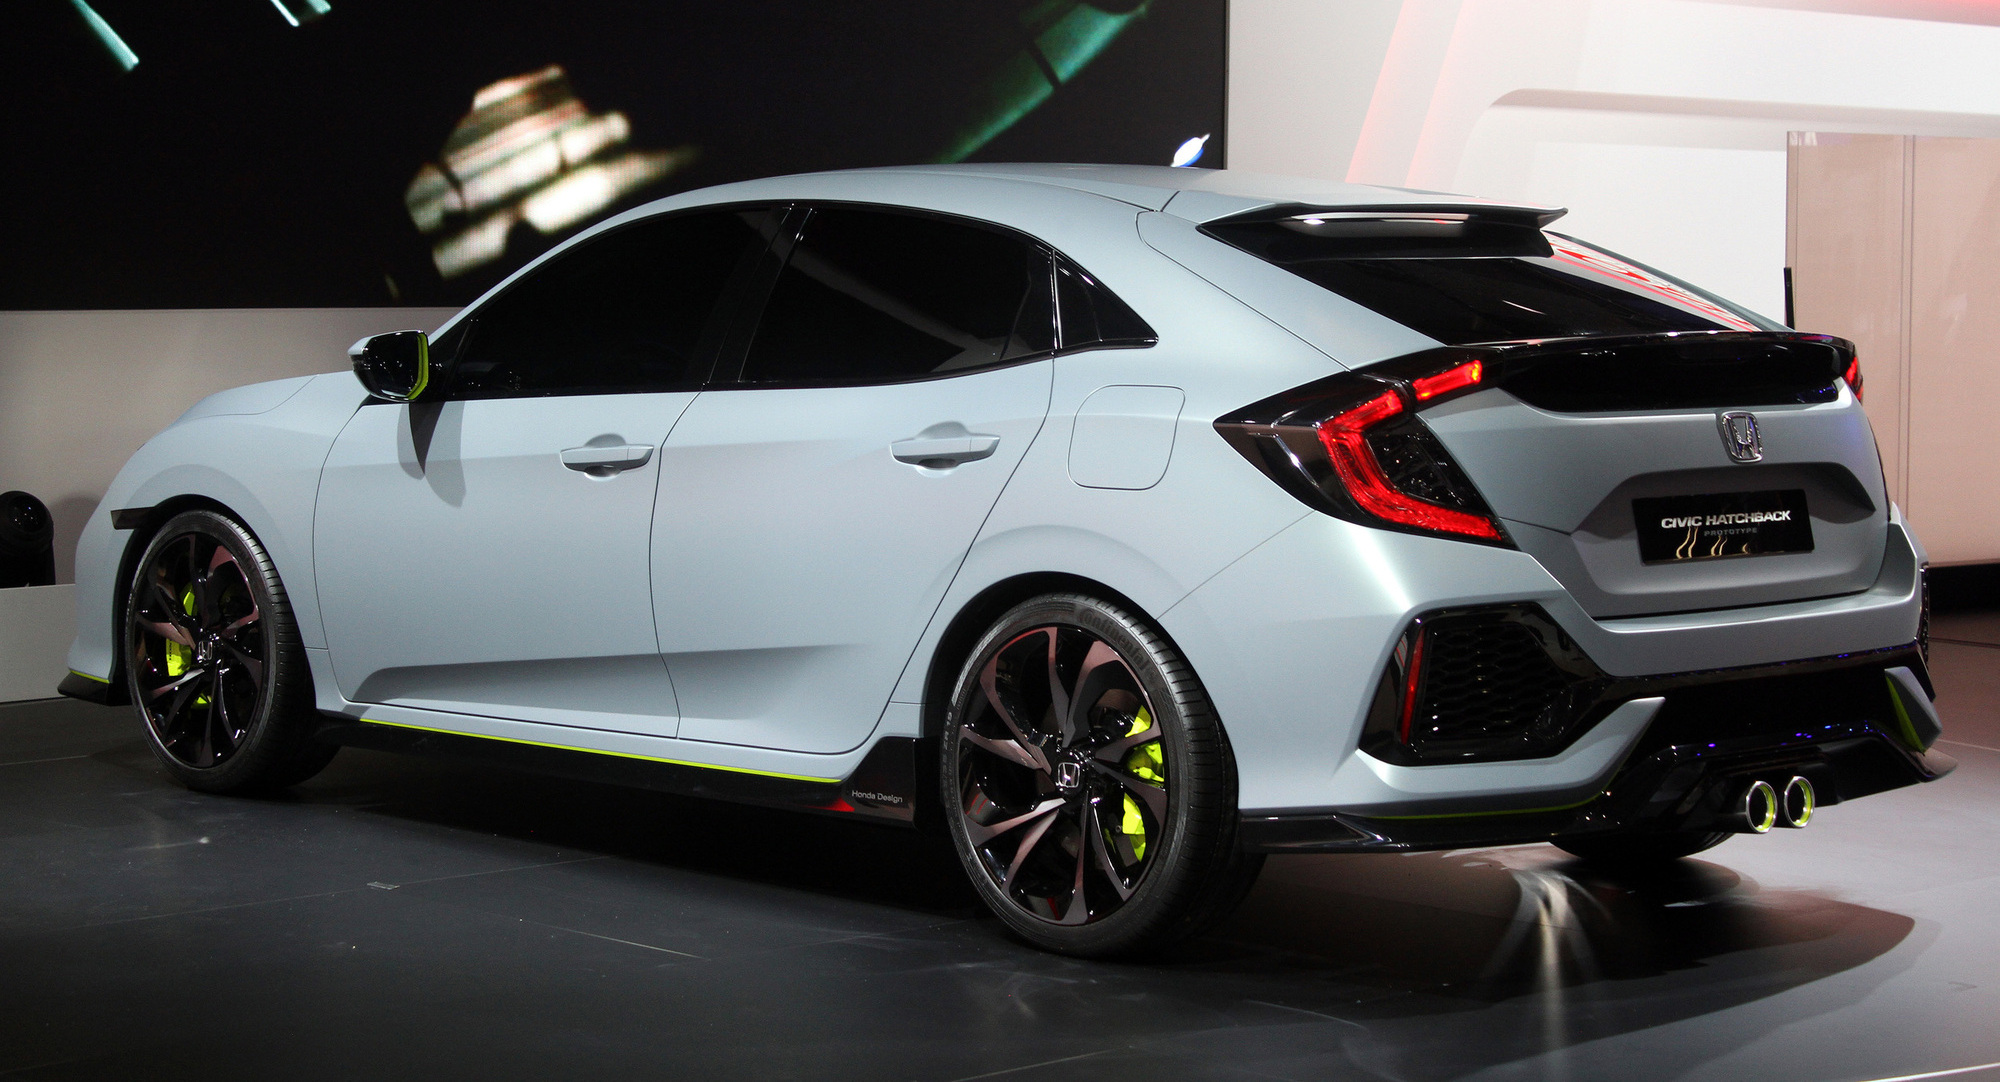 Attractive New Honda Civic Will Be Available In Seven Eye Catching Colors. The Civic  2017 Is Predicted To Be Fuel Efficient.